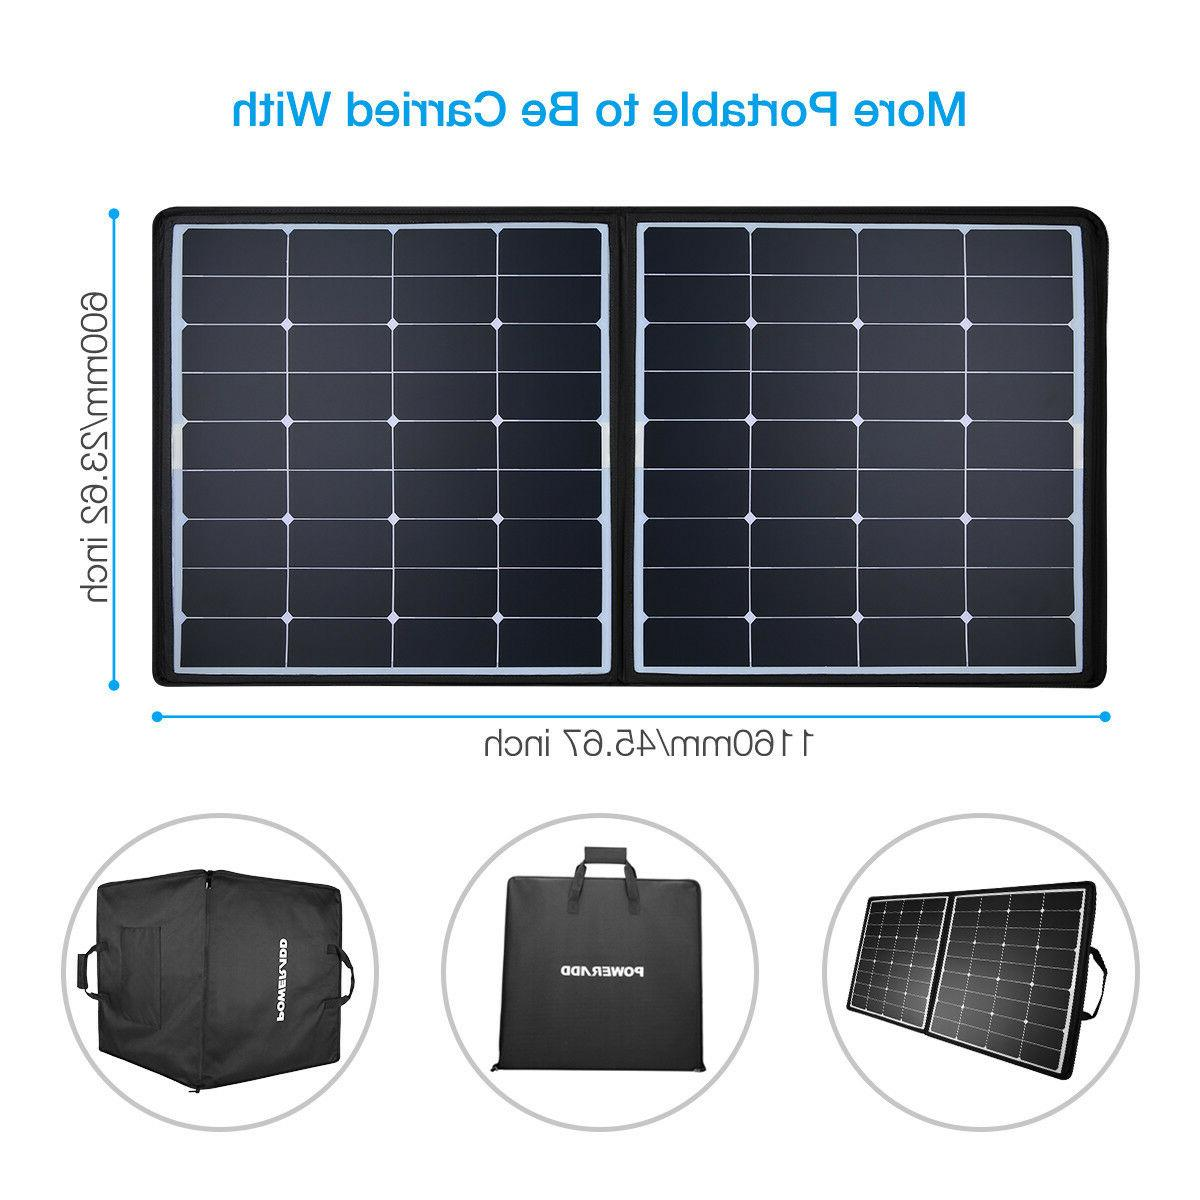 Poweradd 100W 12V Foldable Battery Charger for RV Boat Home